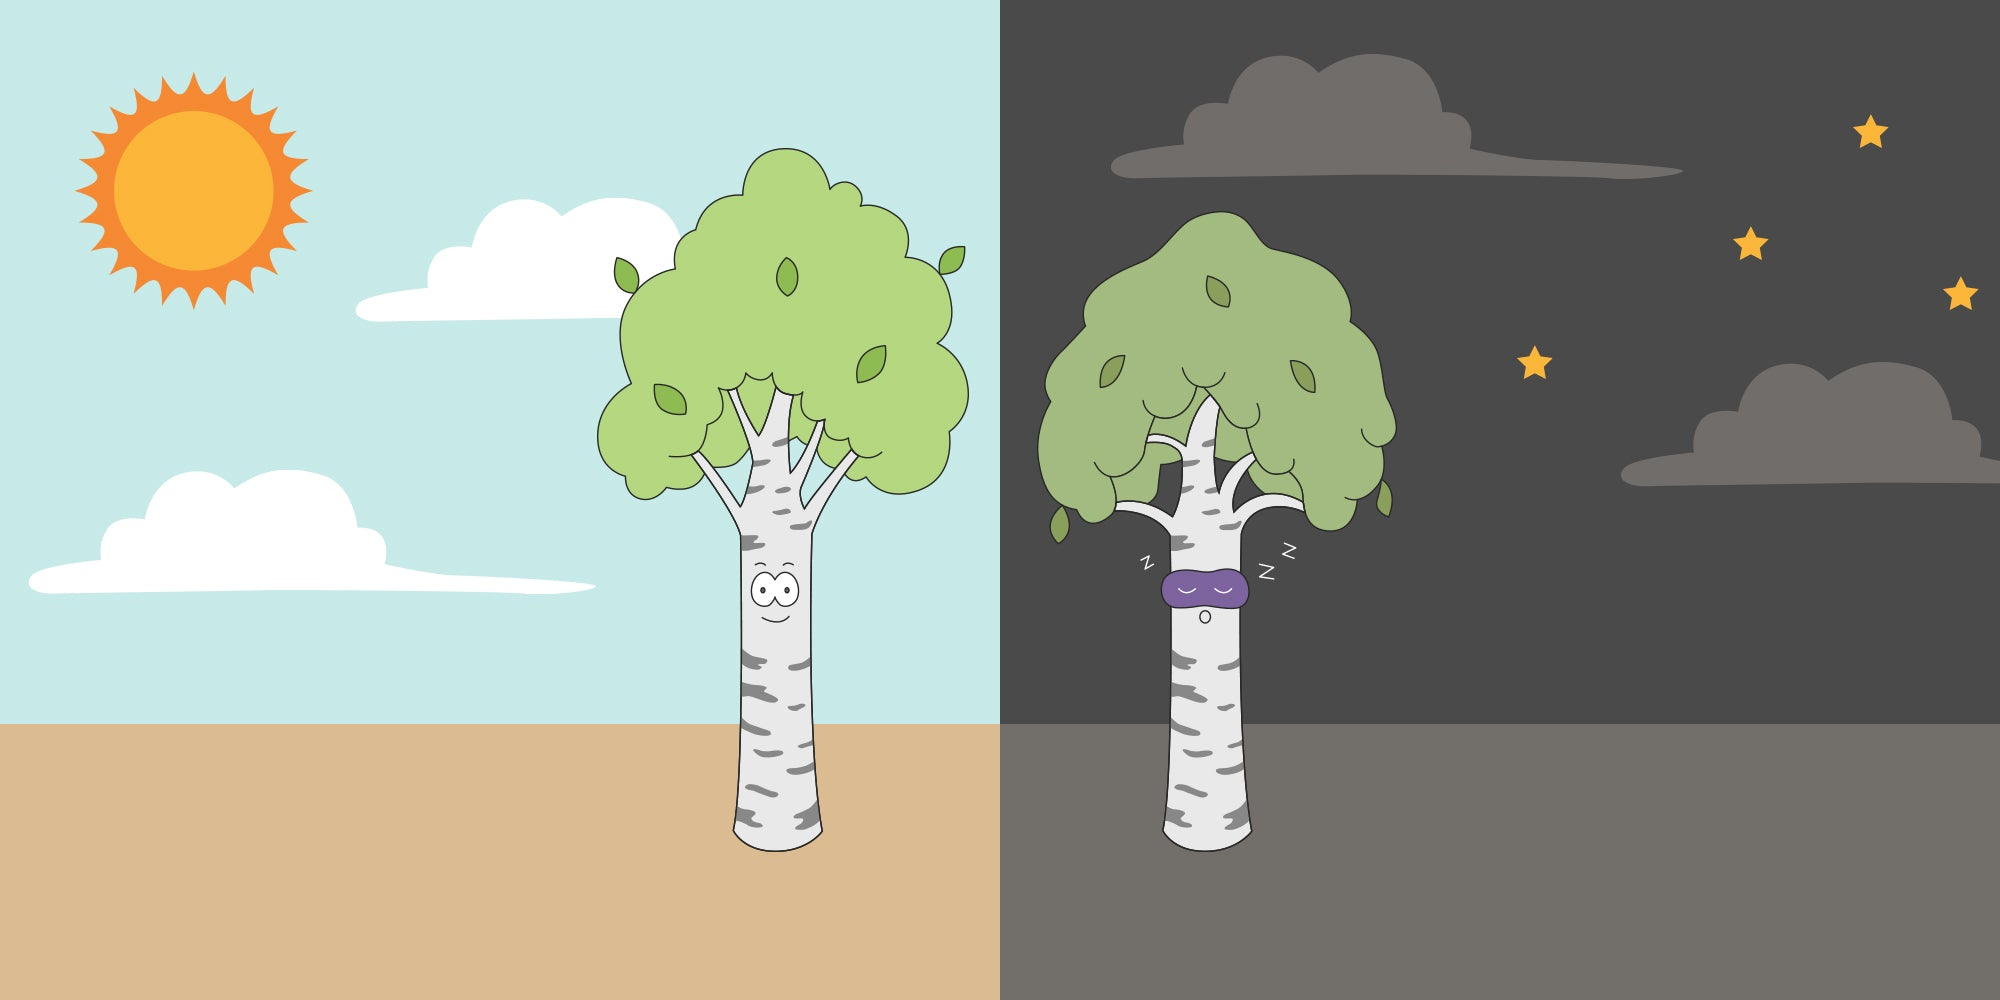 Illustration of trees at night and during the day